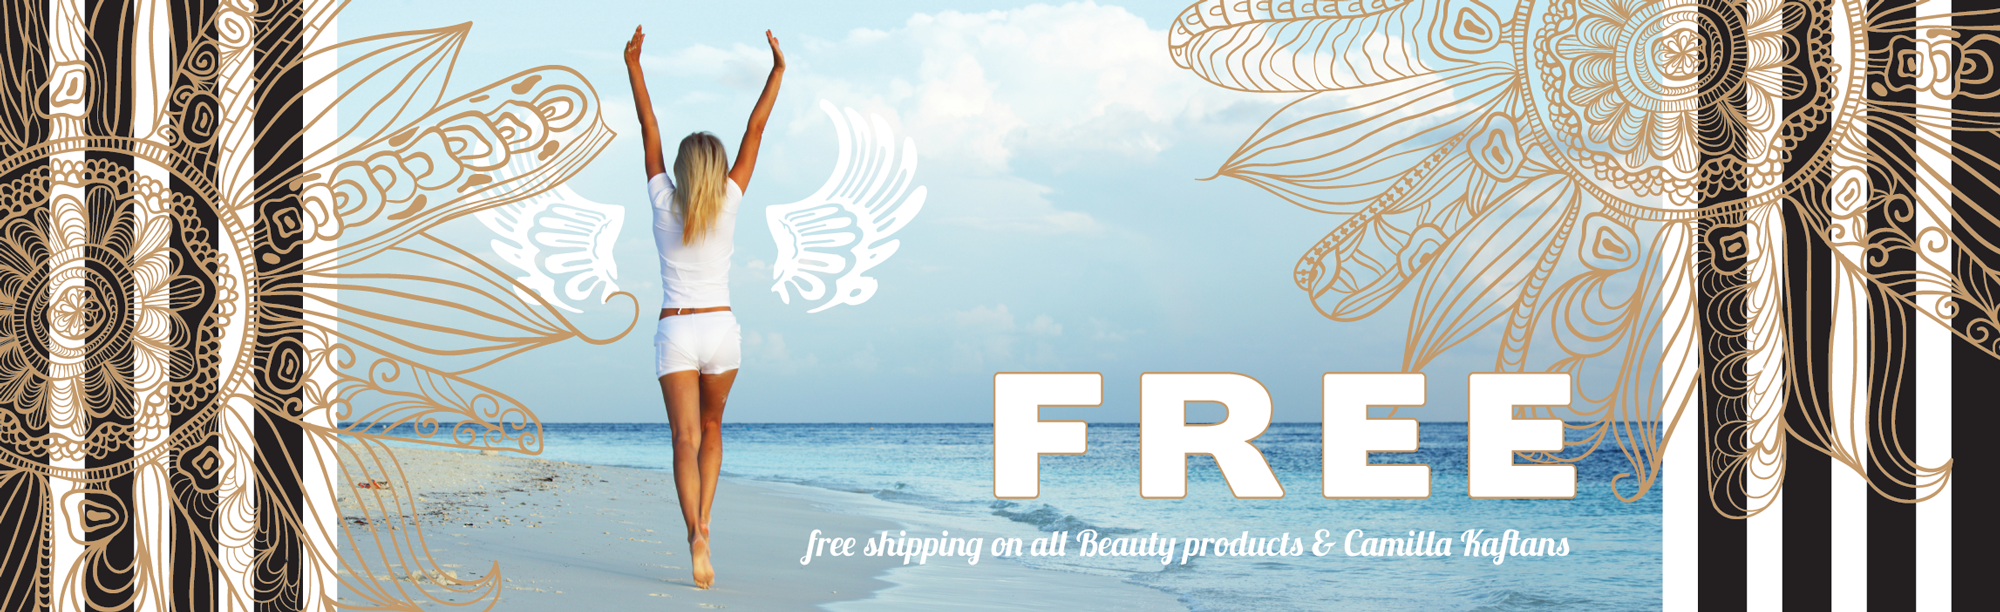 shop-banners_free_shipping.png